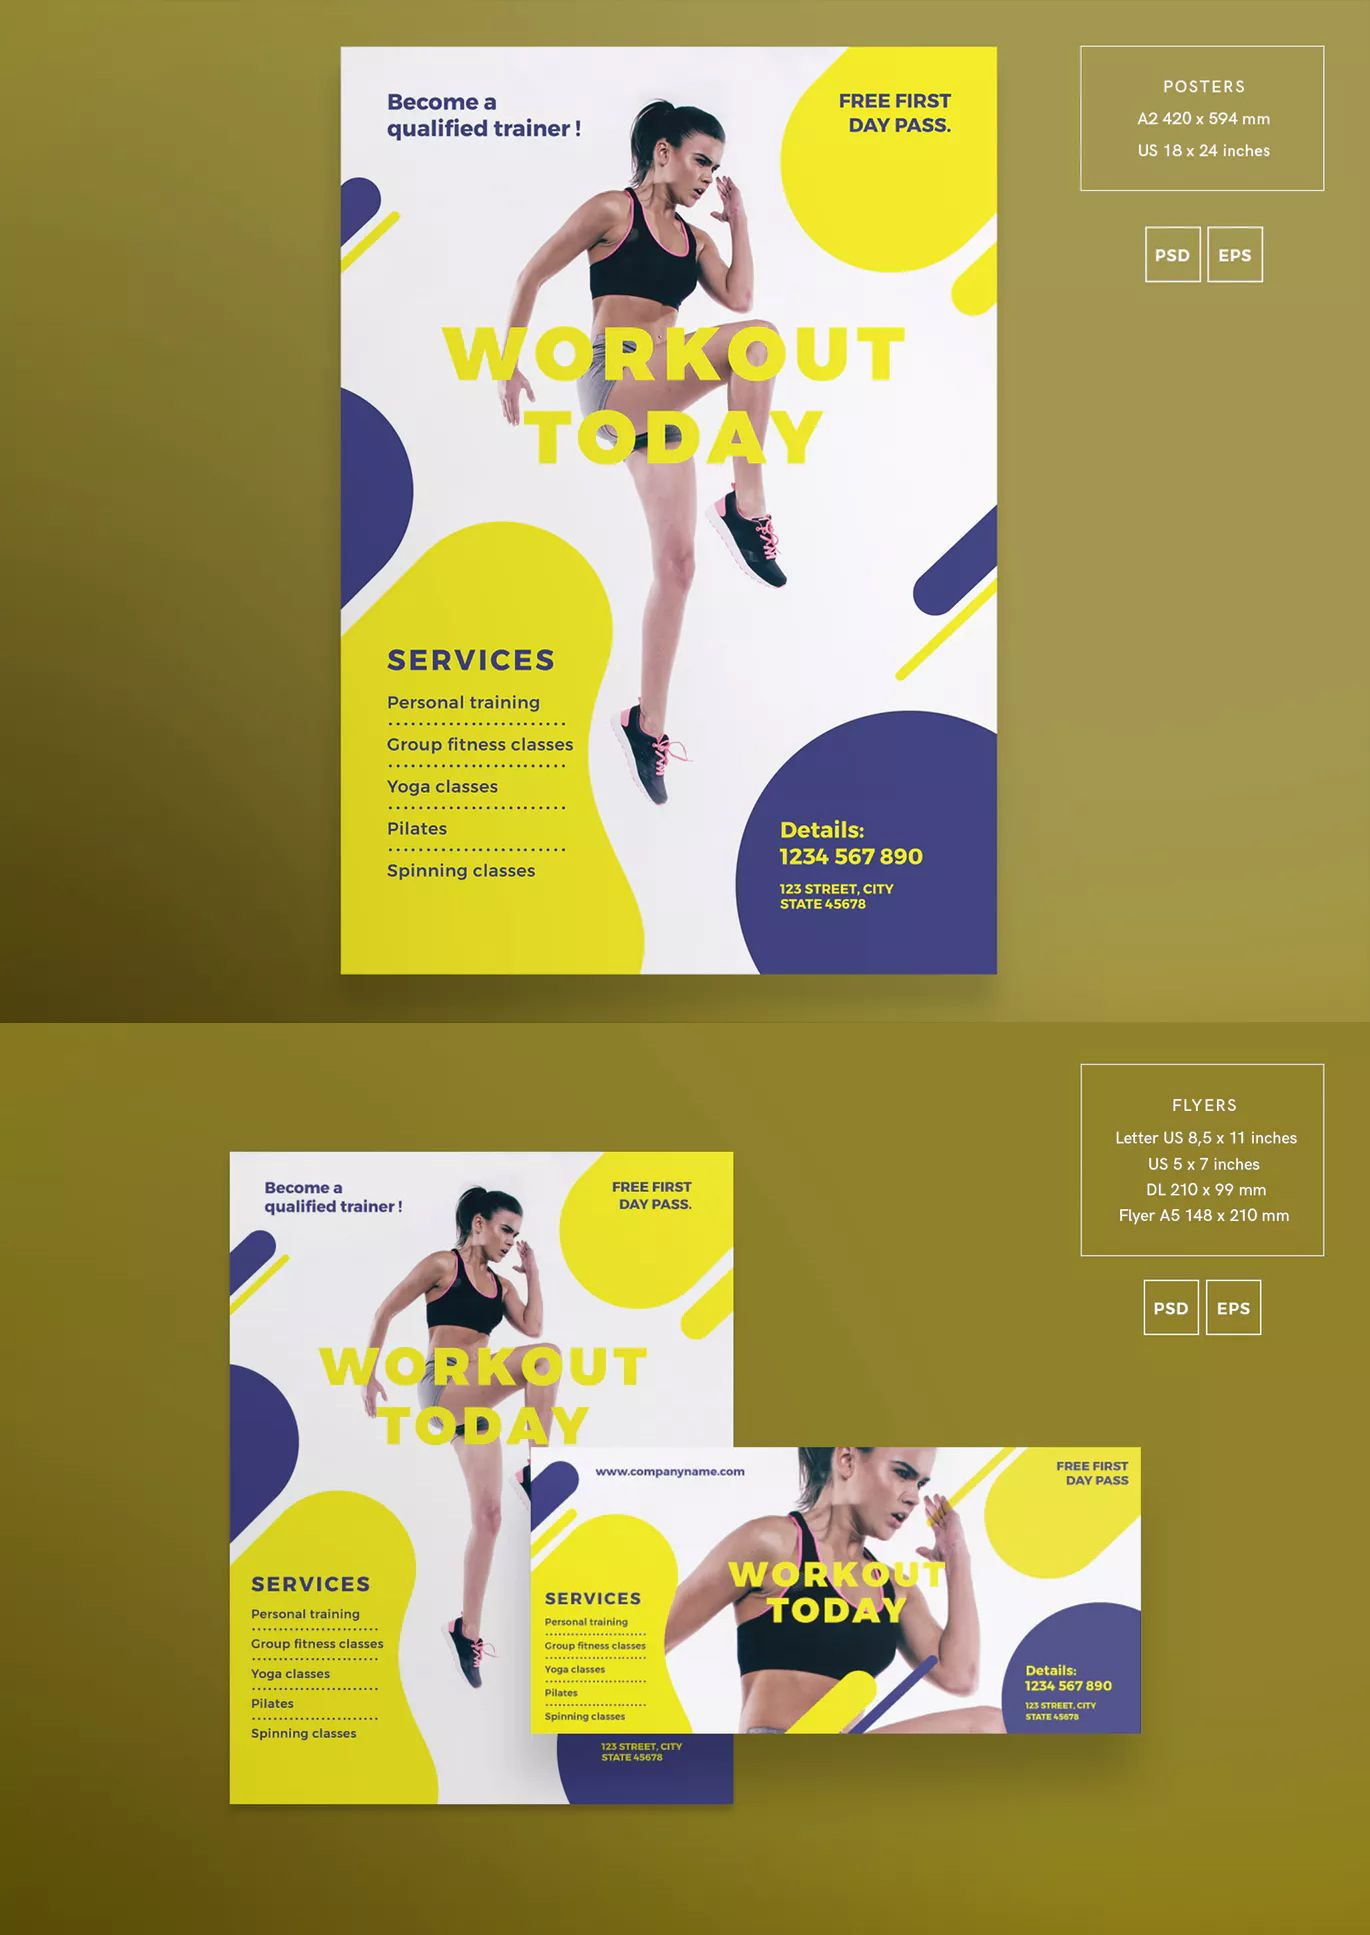 Gym Workout Flyer and Poster Template EPS, PSD Flyer